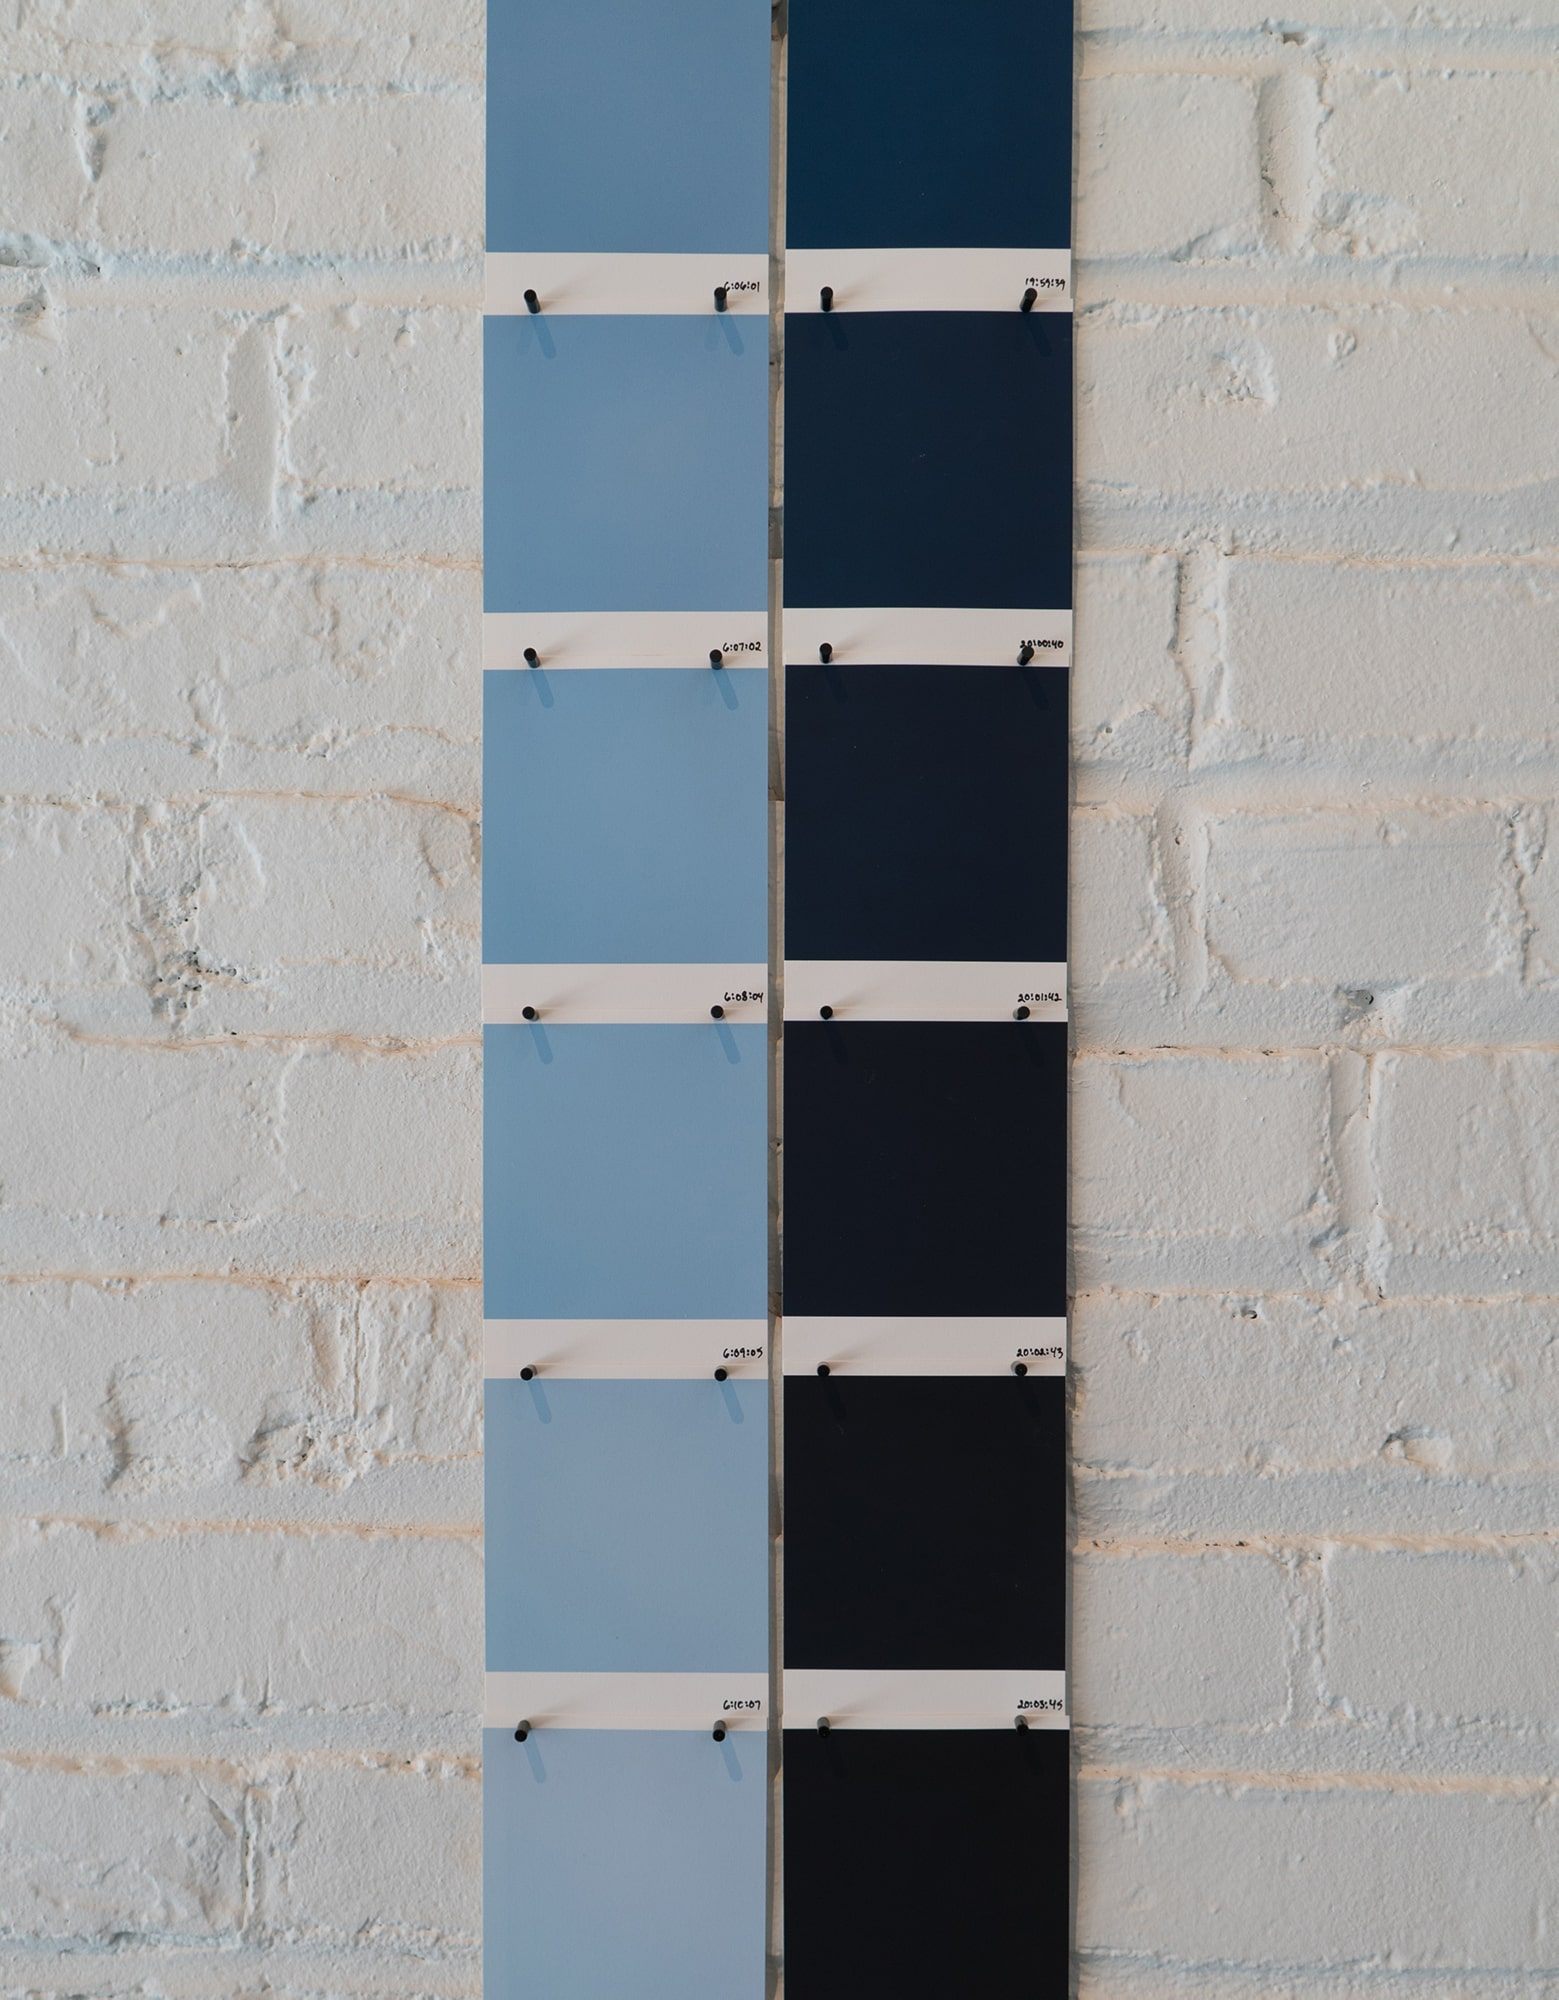 Randy Gibson's <em>Available Light Symmetry 17 VIII 21</em> installed at the Wild Project Gallery